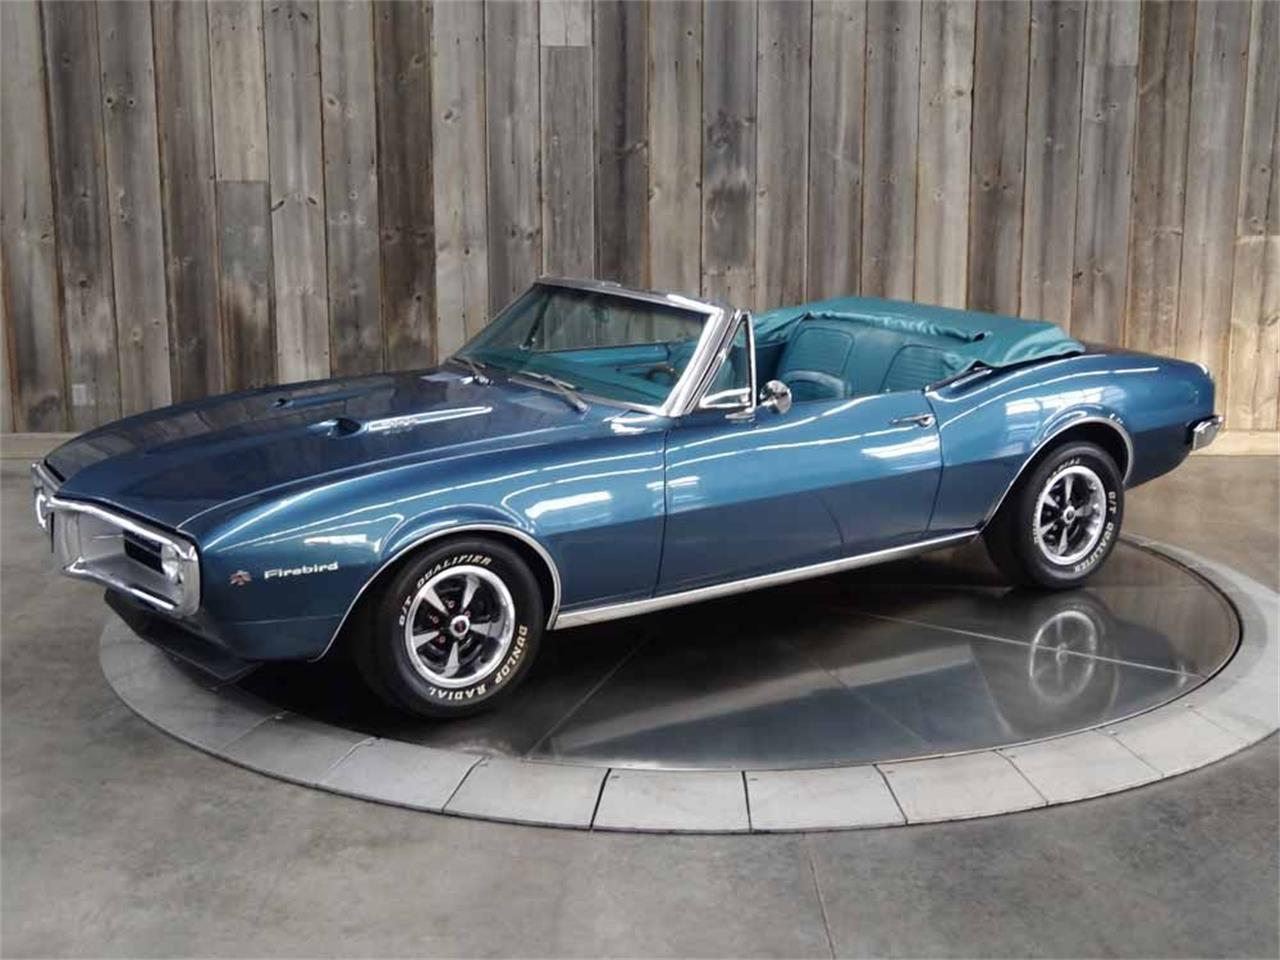 Large Picture of Classic 1967 Pontiac Firebird located in Bettendorf Iowa - $34,900.00 Offered by Veit's Vettes And Collector Cars - P2F9